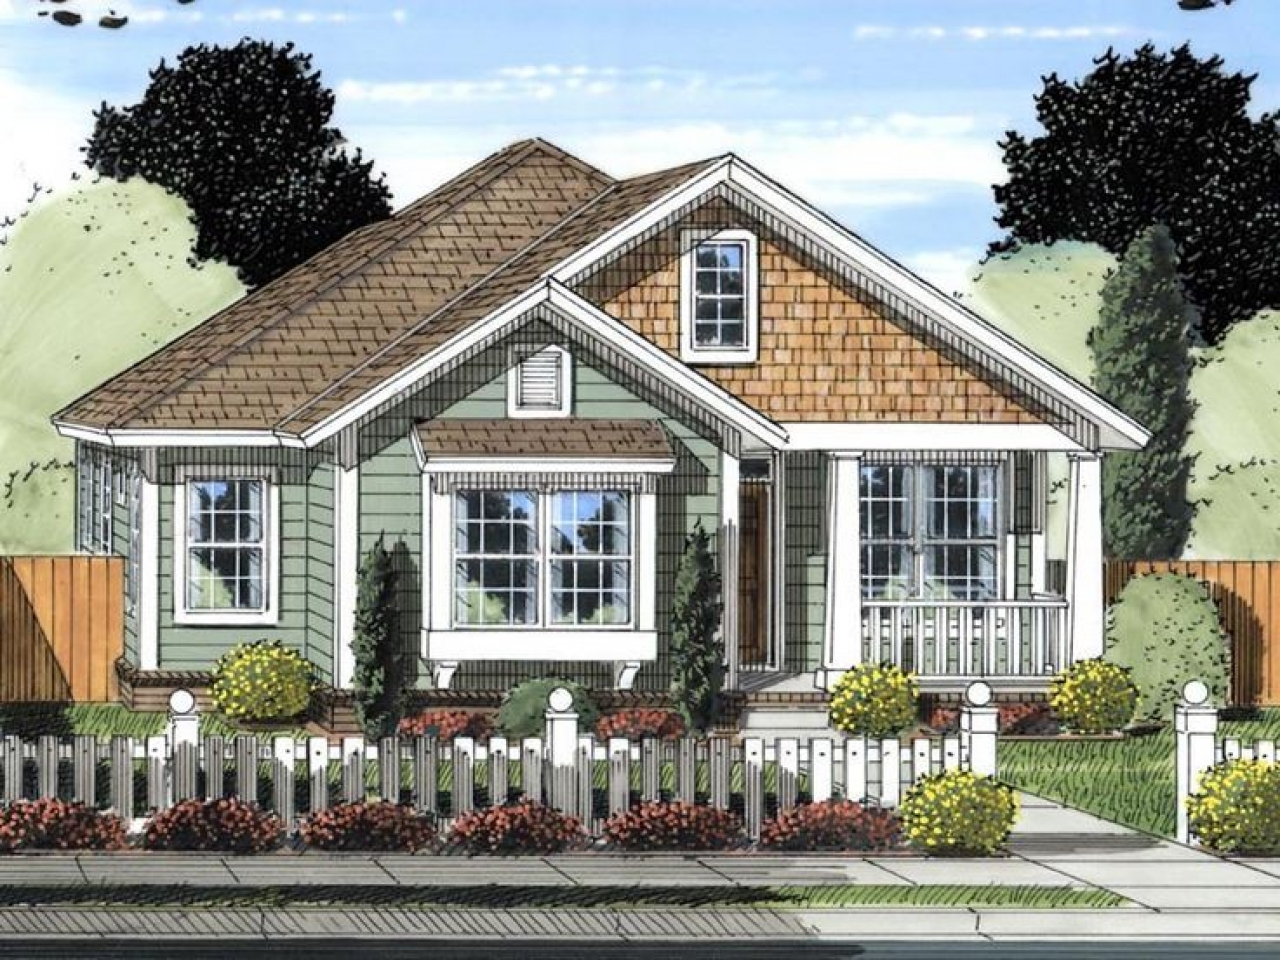 Vintage craftsman house plans craftsman cottage house for Vintage bungalow house plans